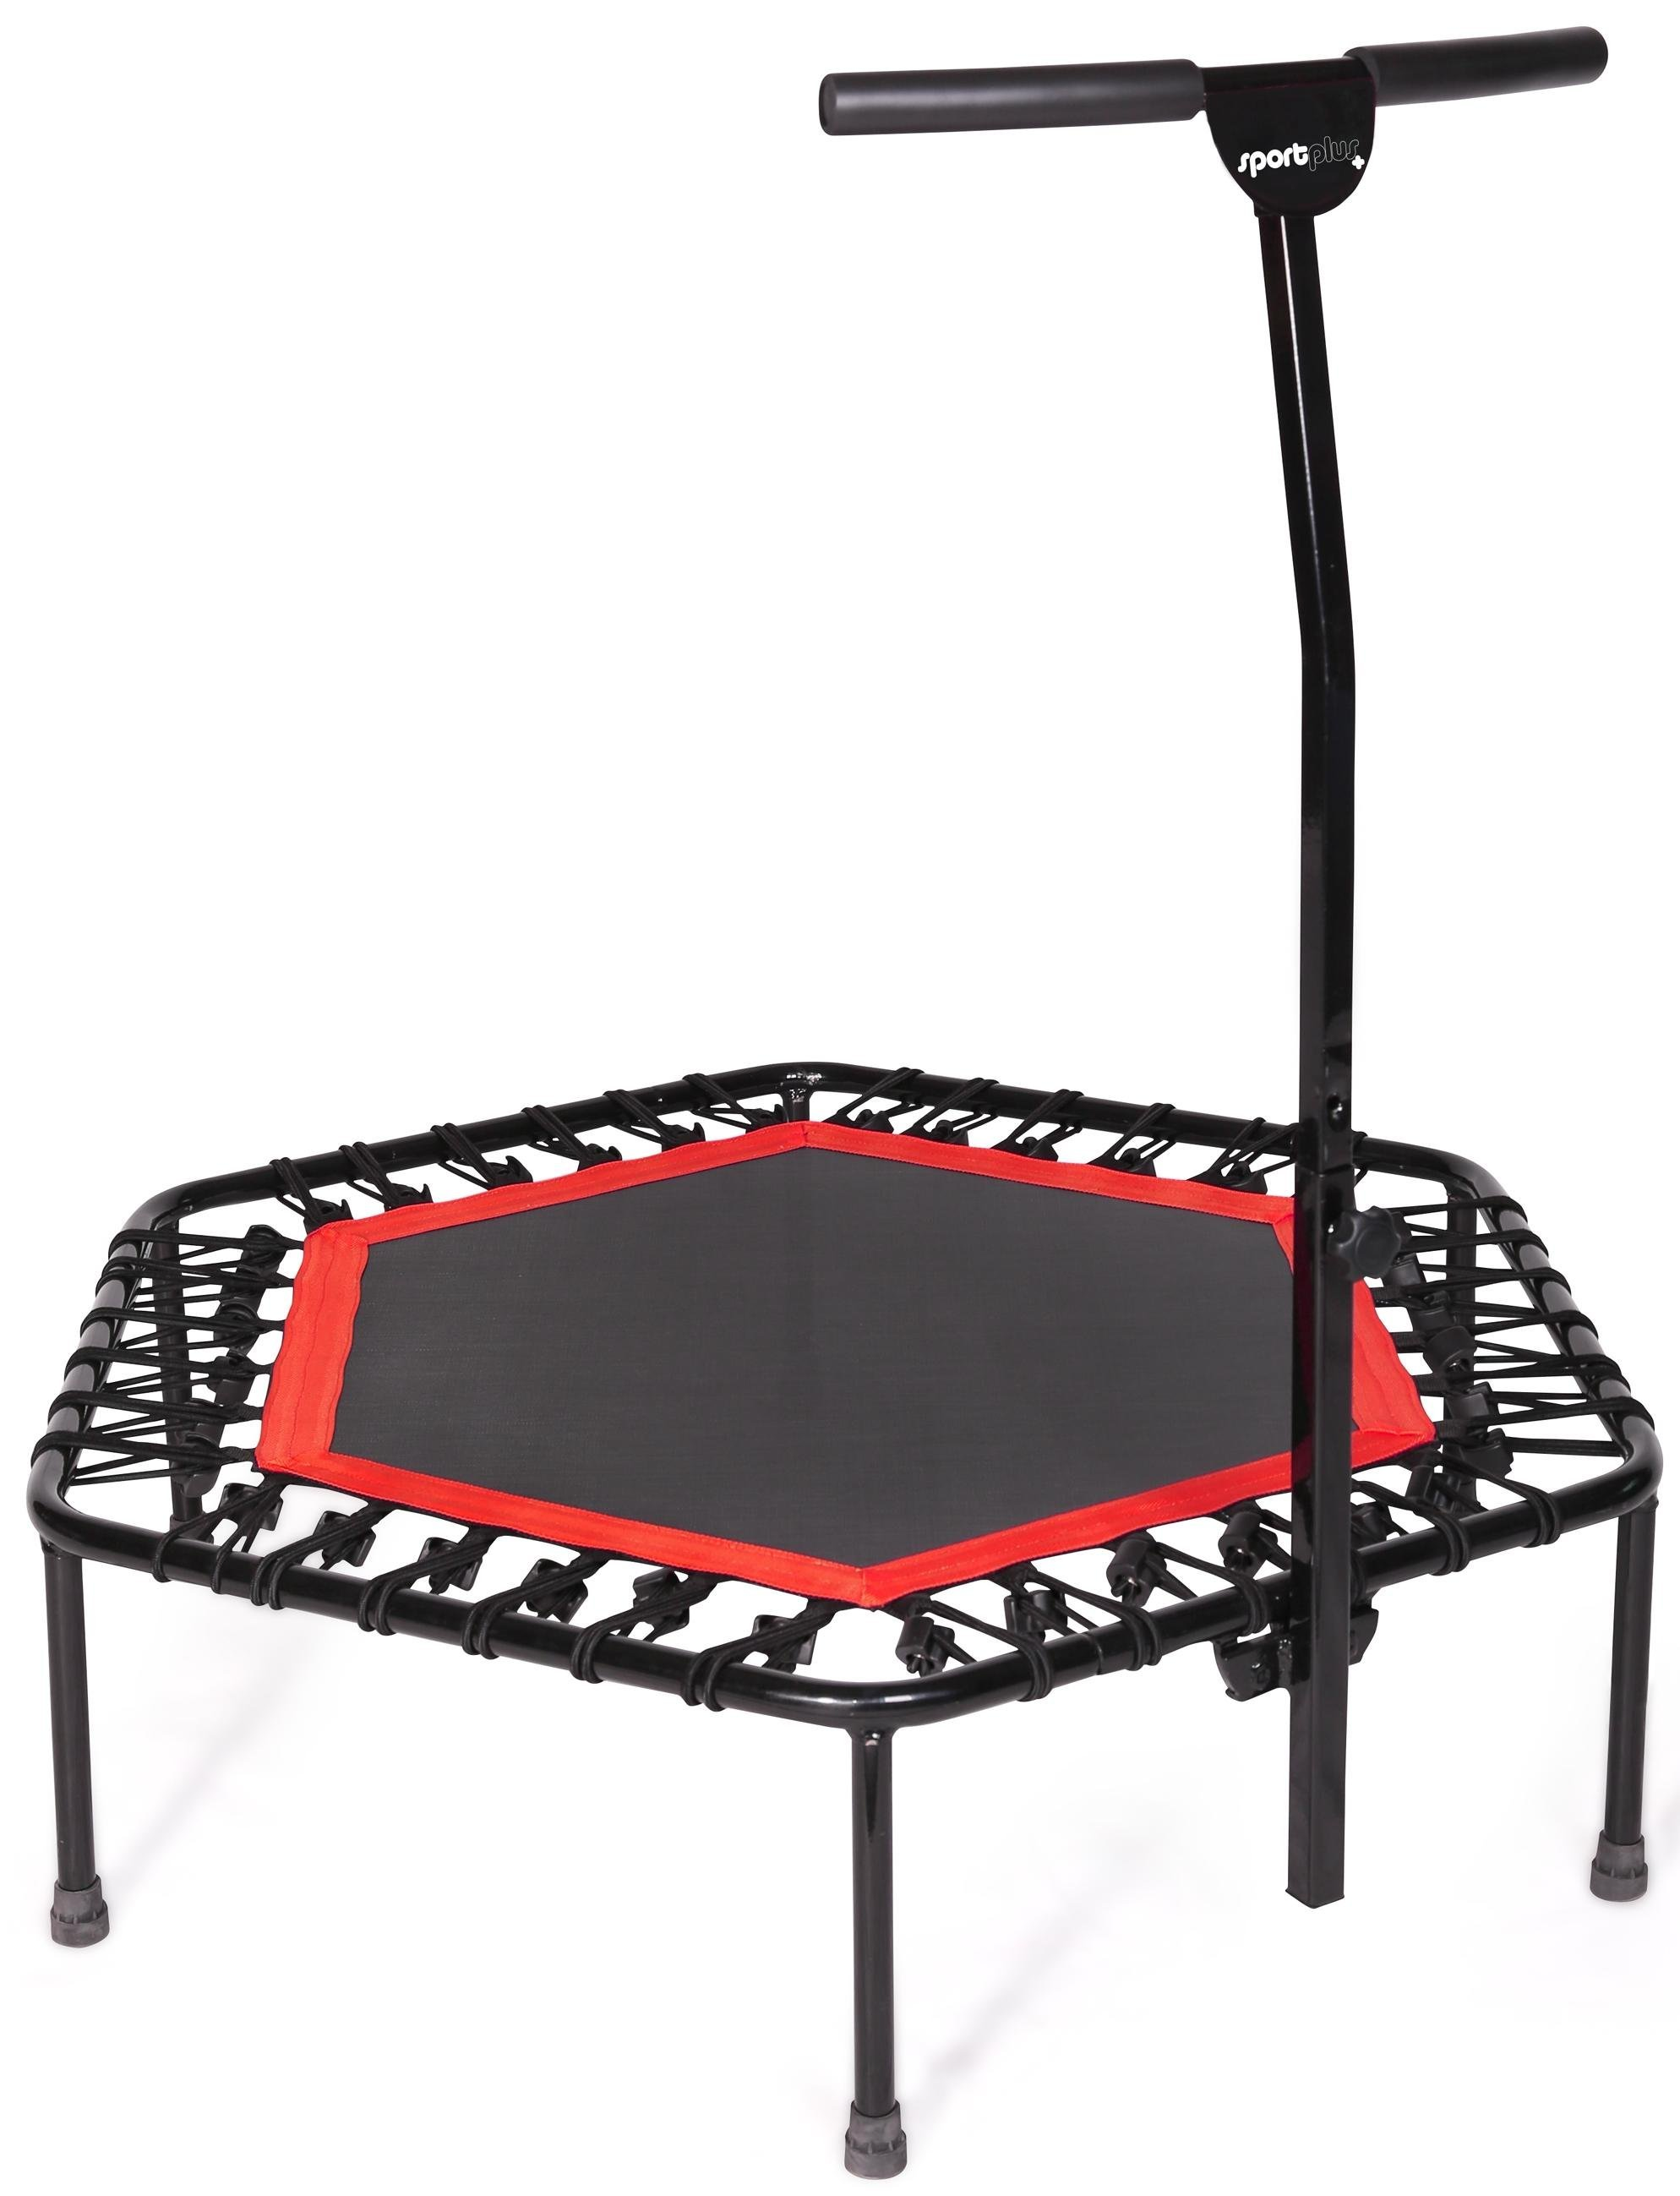 sportplus fitness trampolin bungee seil system 110 cm bis 130 kg benutzergewicht t v s d. Black Bedroom Furniture Sets. Home Design Ideas